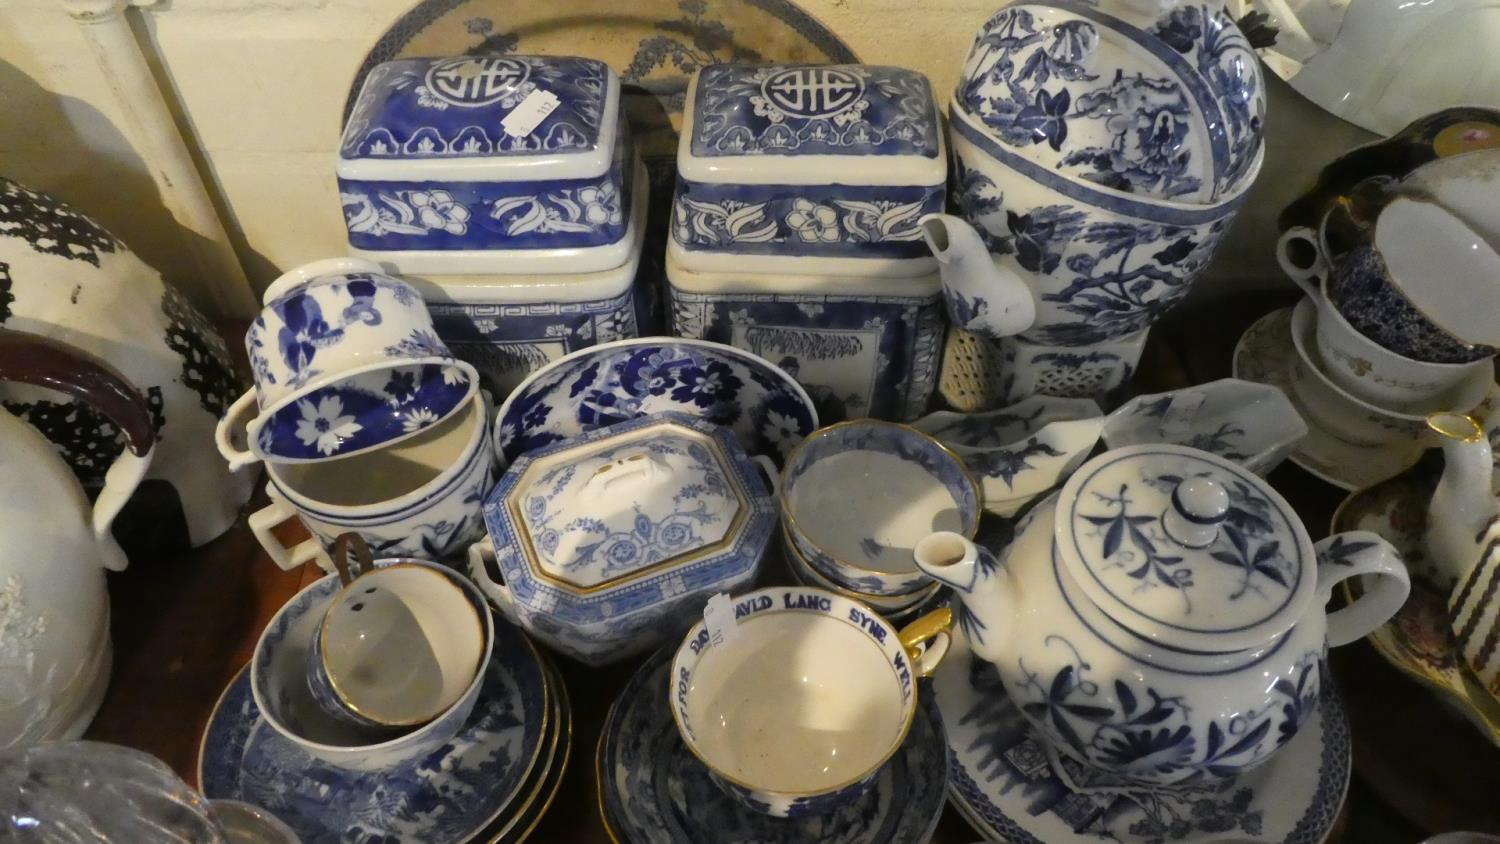 Lot 236 - A Tray Containing Blue and White Ceramics to Include Oriental Tea Caddies, Teapot, Cups and